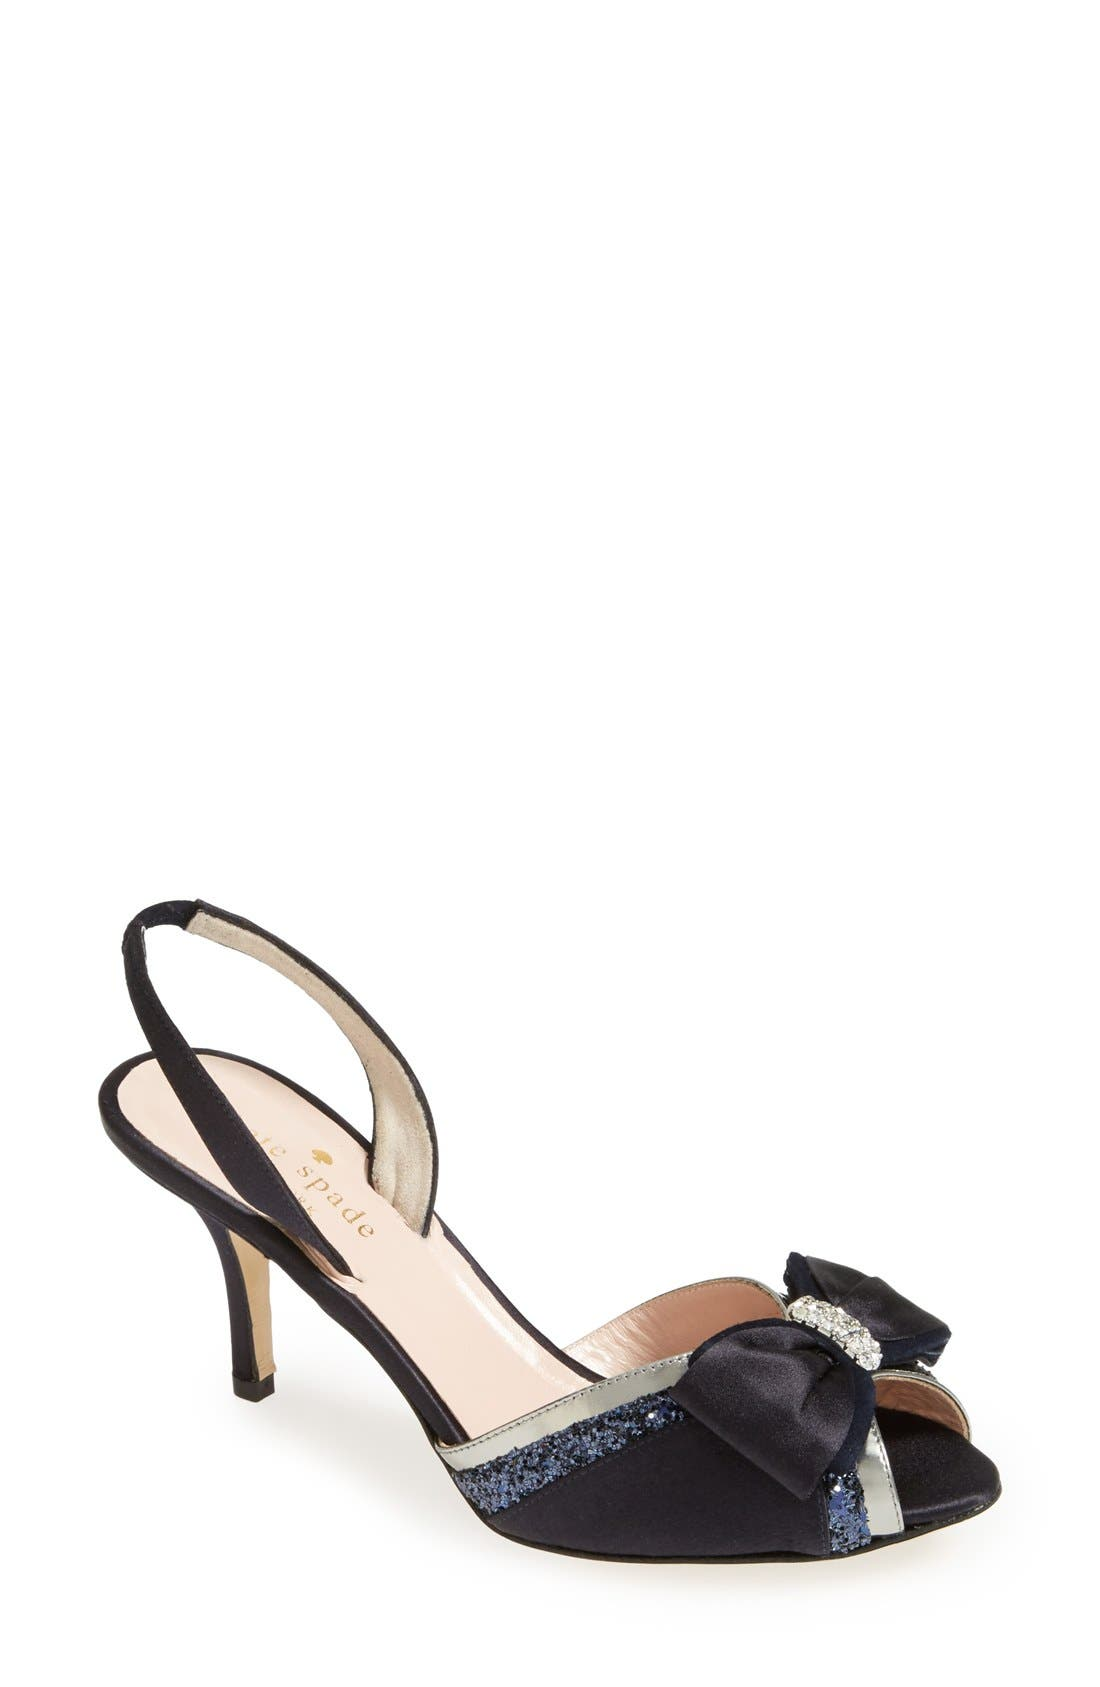 Alternate Image 1 Selected - kate spade new york 'solar' satin bow sandal (women)